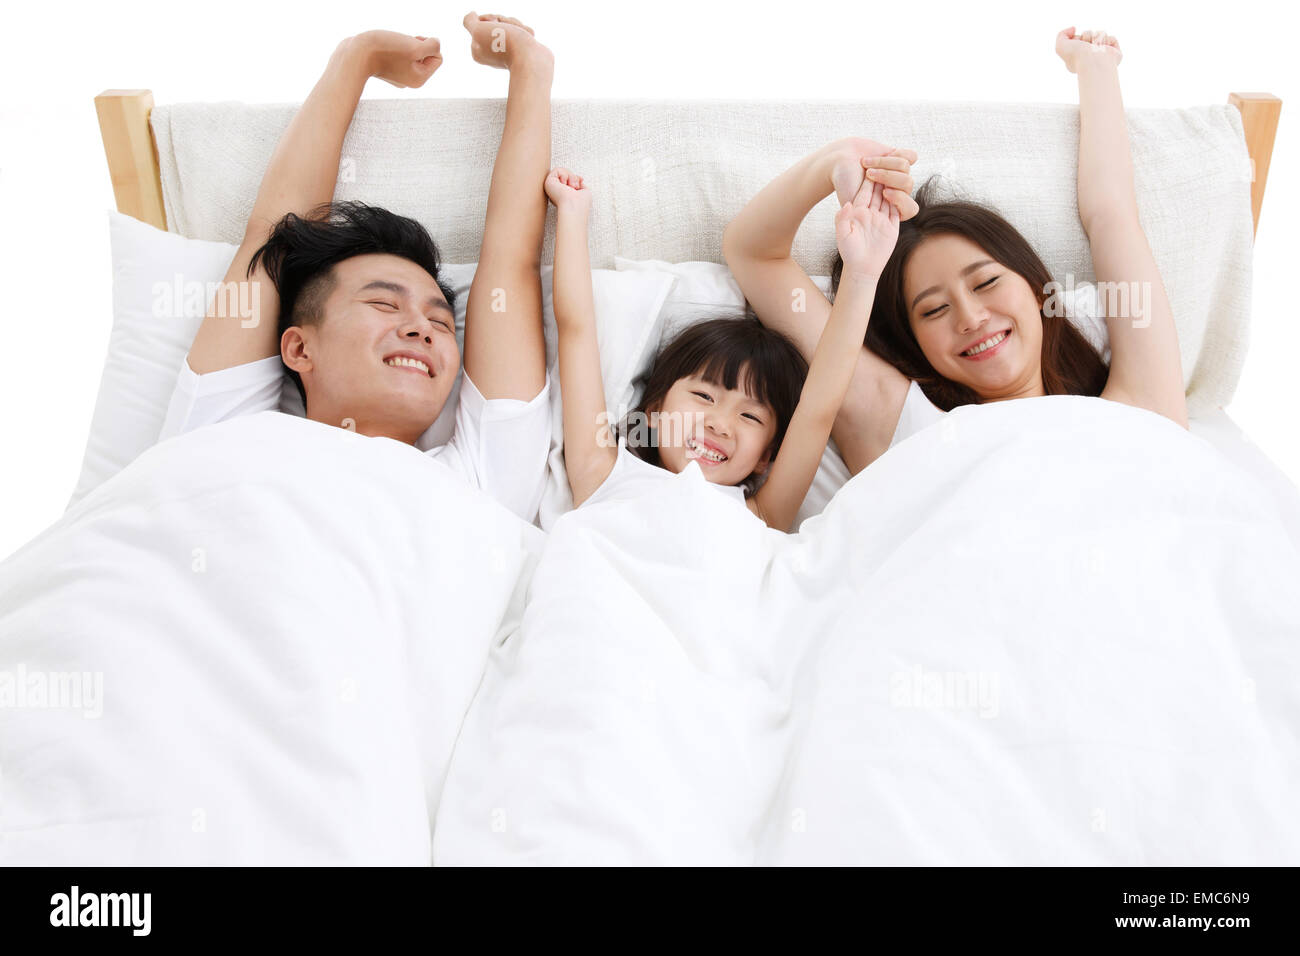 The happiness of a family of three in the bed of the bedroom woke up - Stock Image